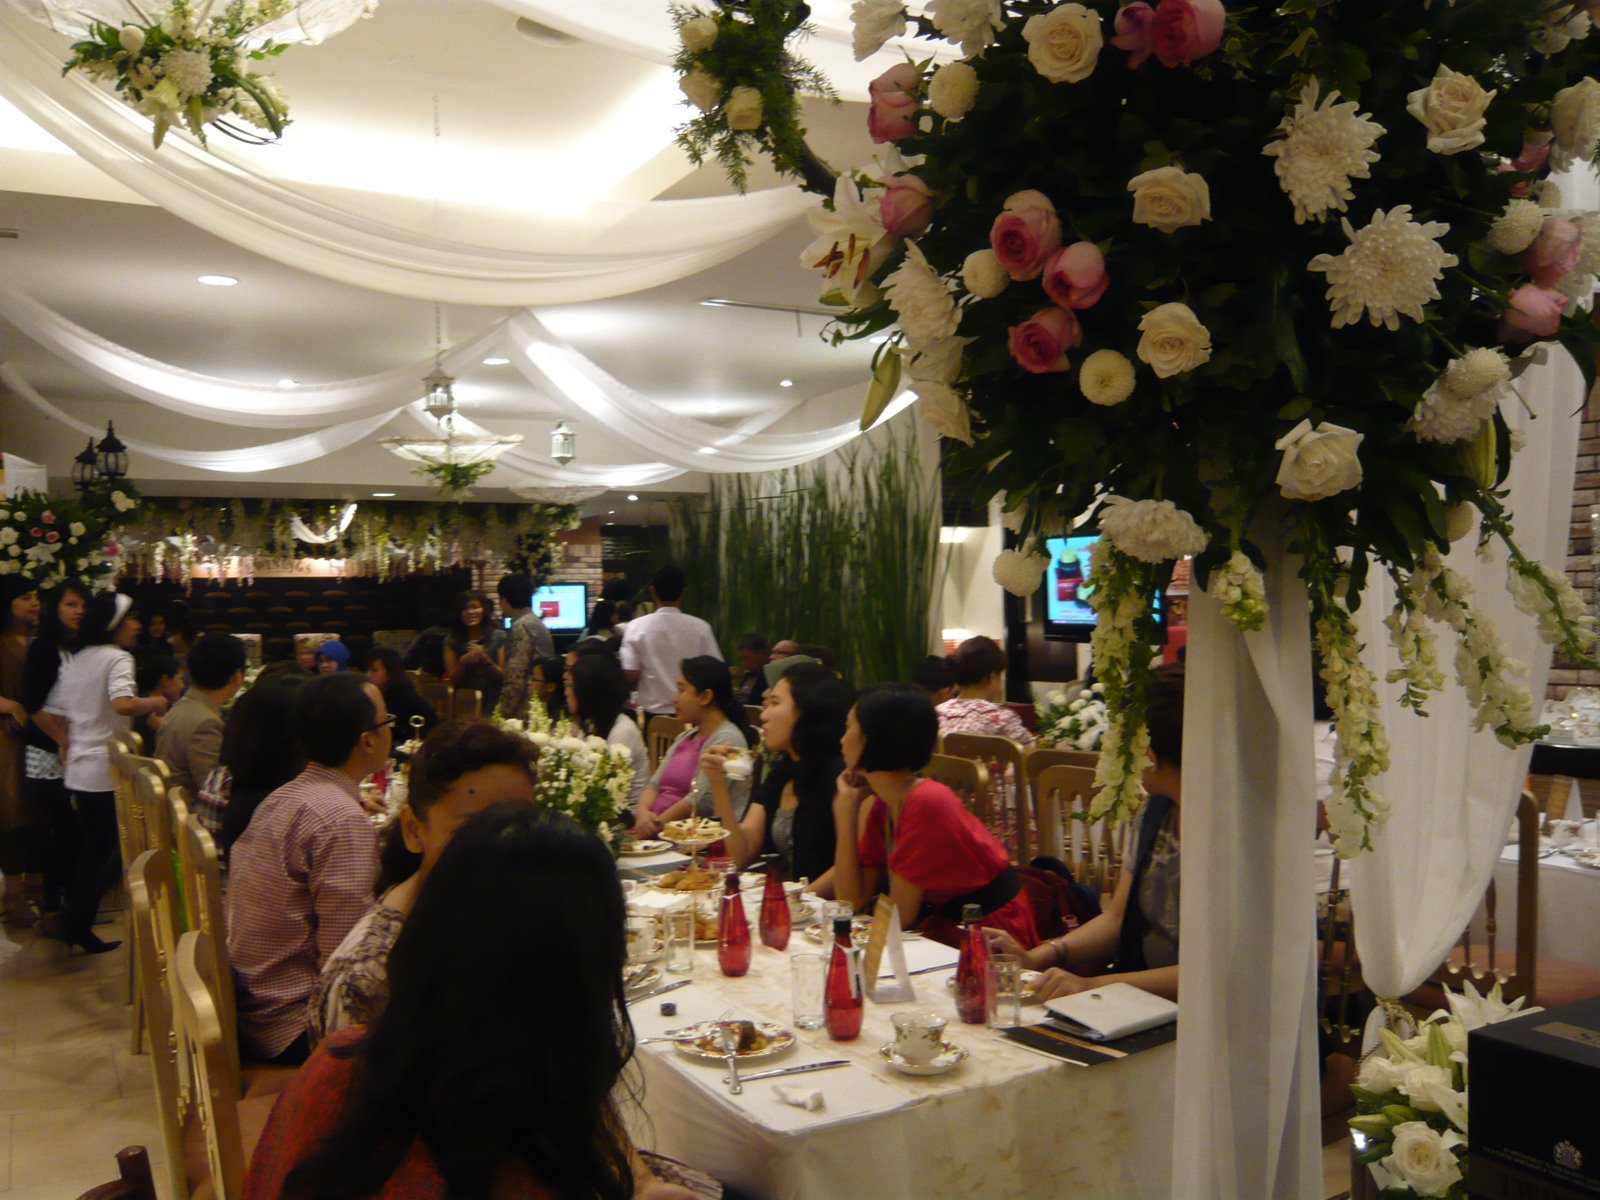 Magpie salmagundi the worlds wedding i was seated next to a canadian woman who has lived in indonesia since the 1980s mostly in balikpapan unlike me she wasnt a last minute interloper but junglespirit Images